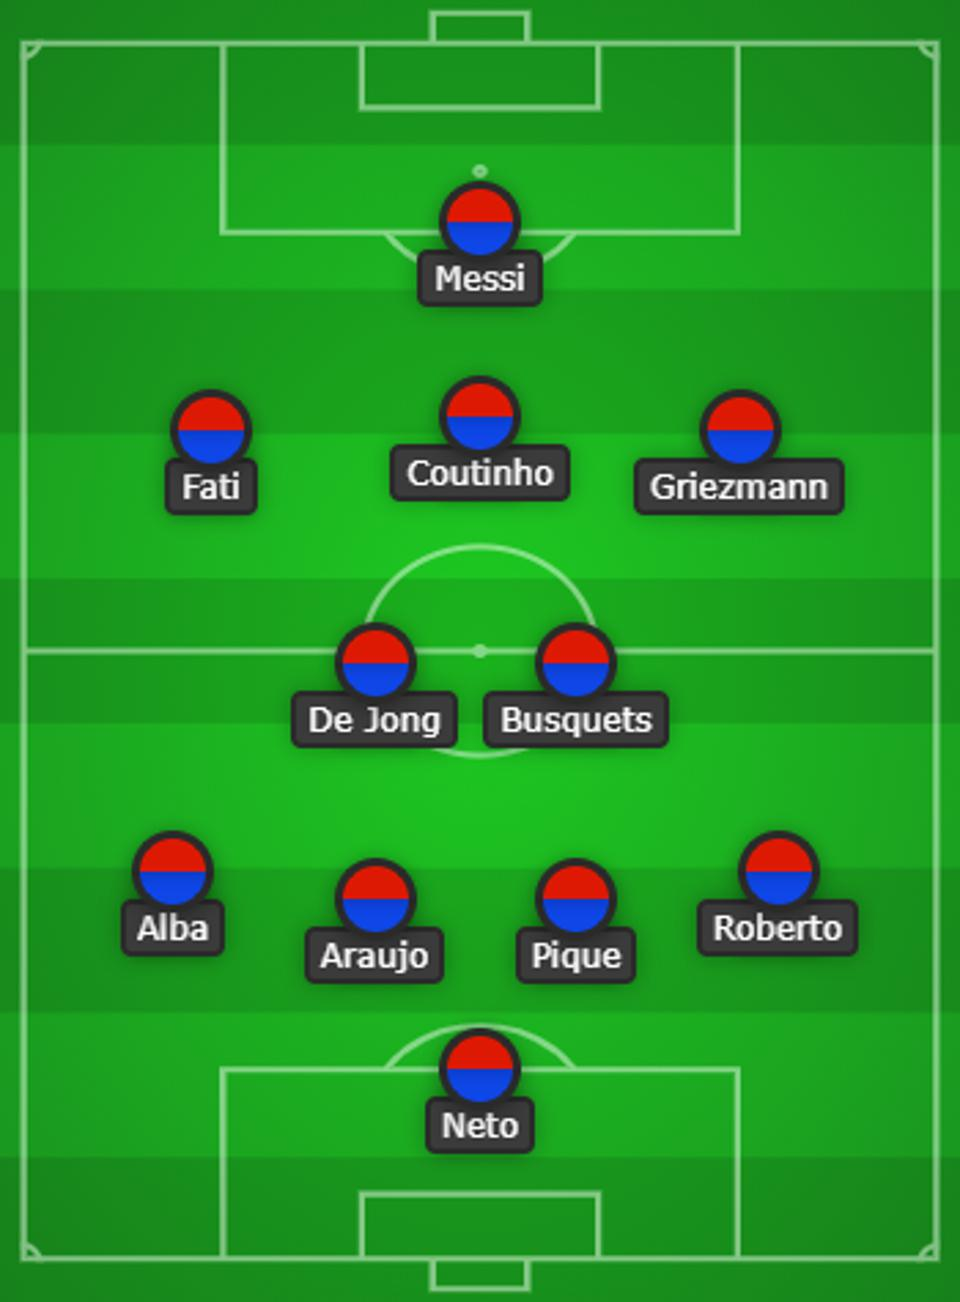 Koeman will only make one change to his starting lineup when FC Barcelona face Sevilla.